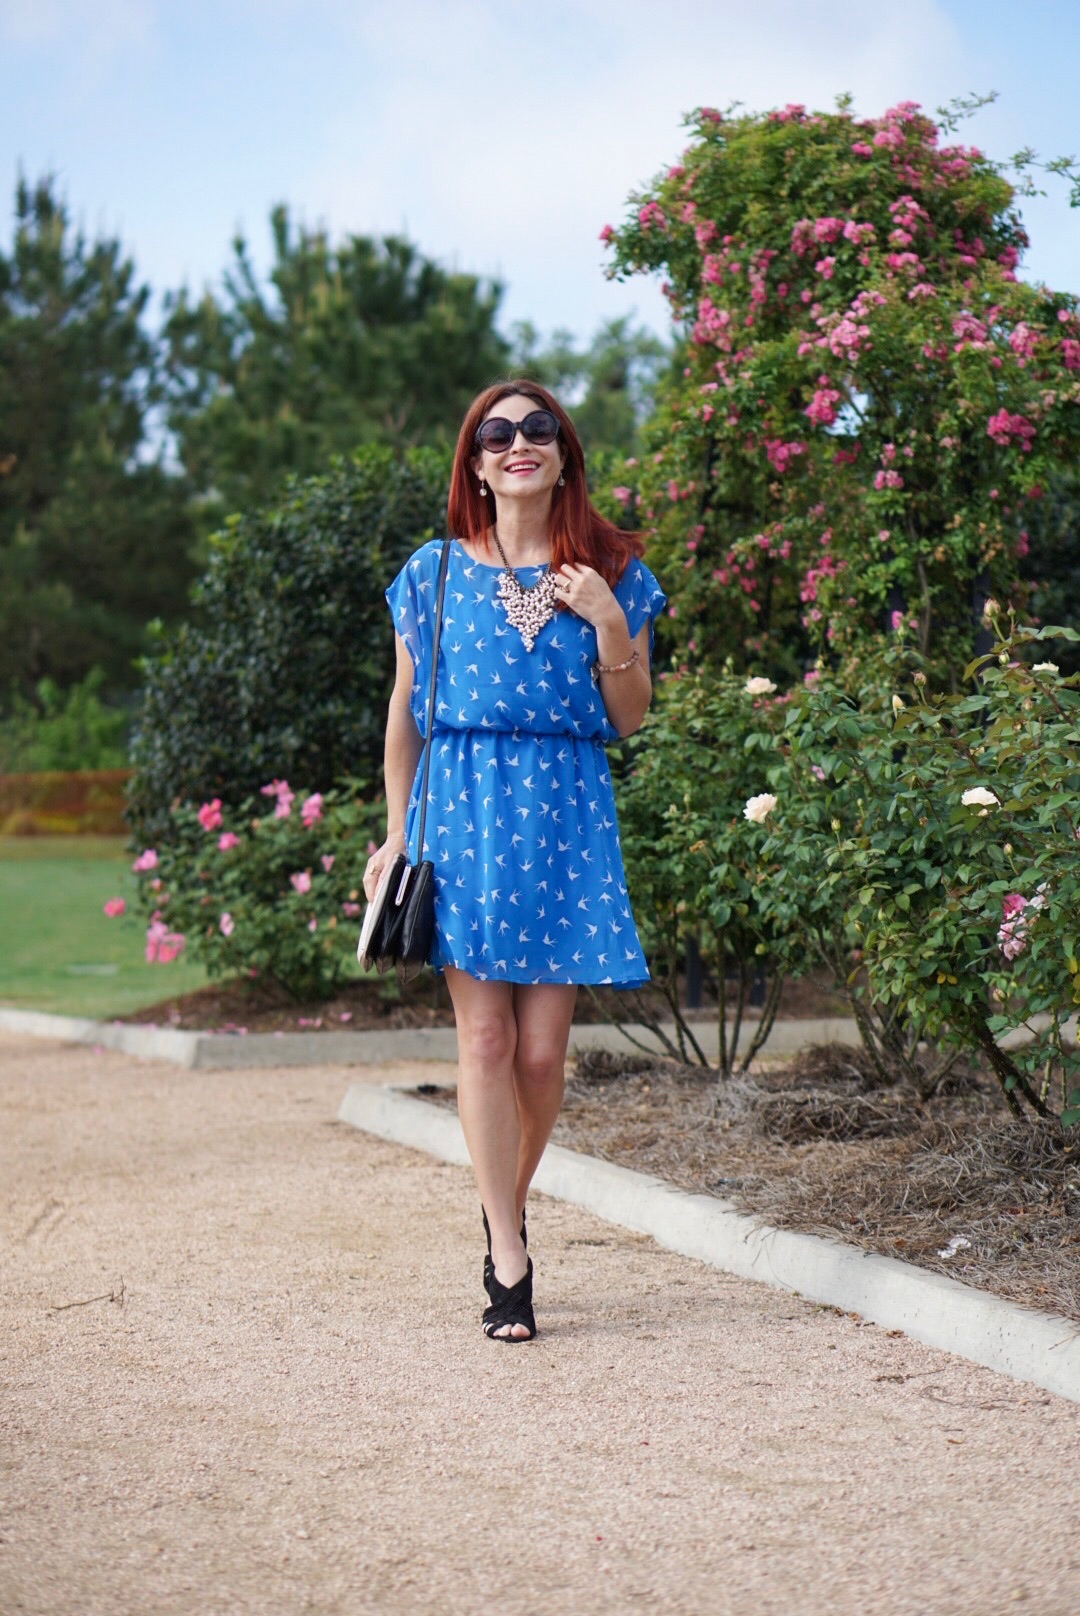 BLUE BIRD DRESS, BLACK SANDALS, FOREVER 21, BIB NECKLACE, MCGOVERN CENTENNIAL GARDENS